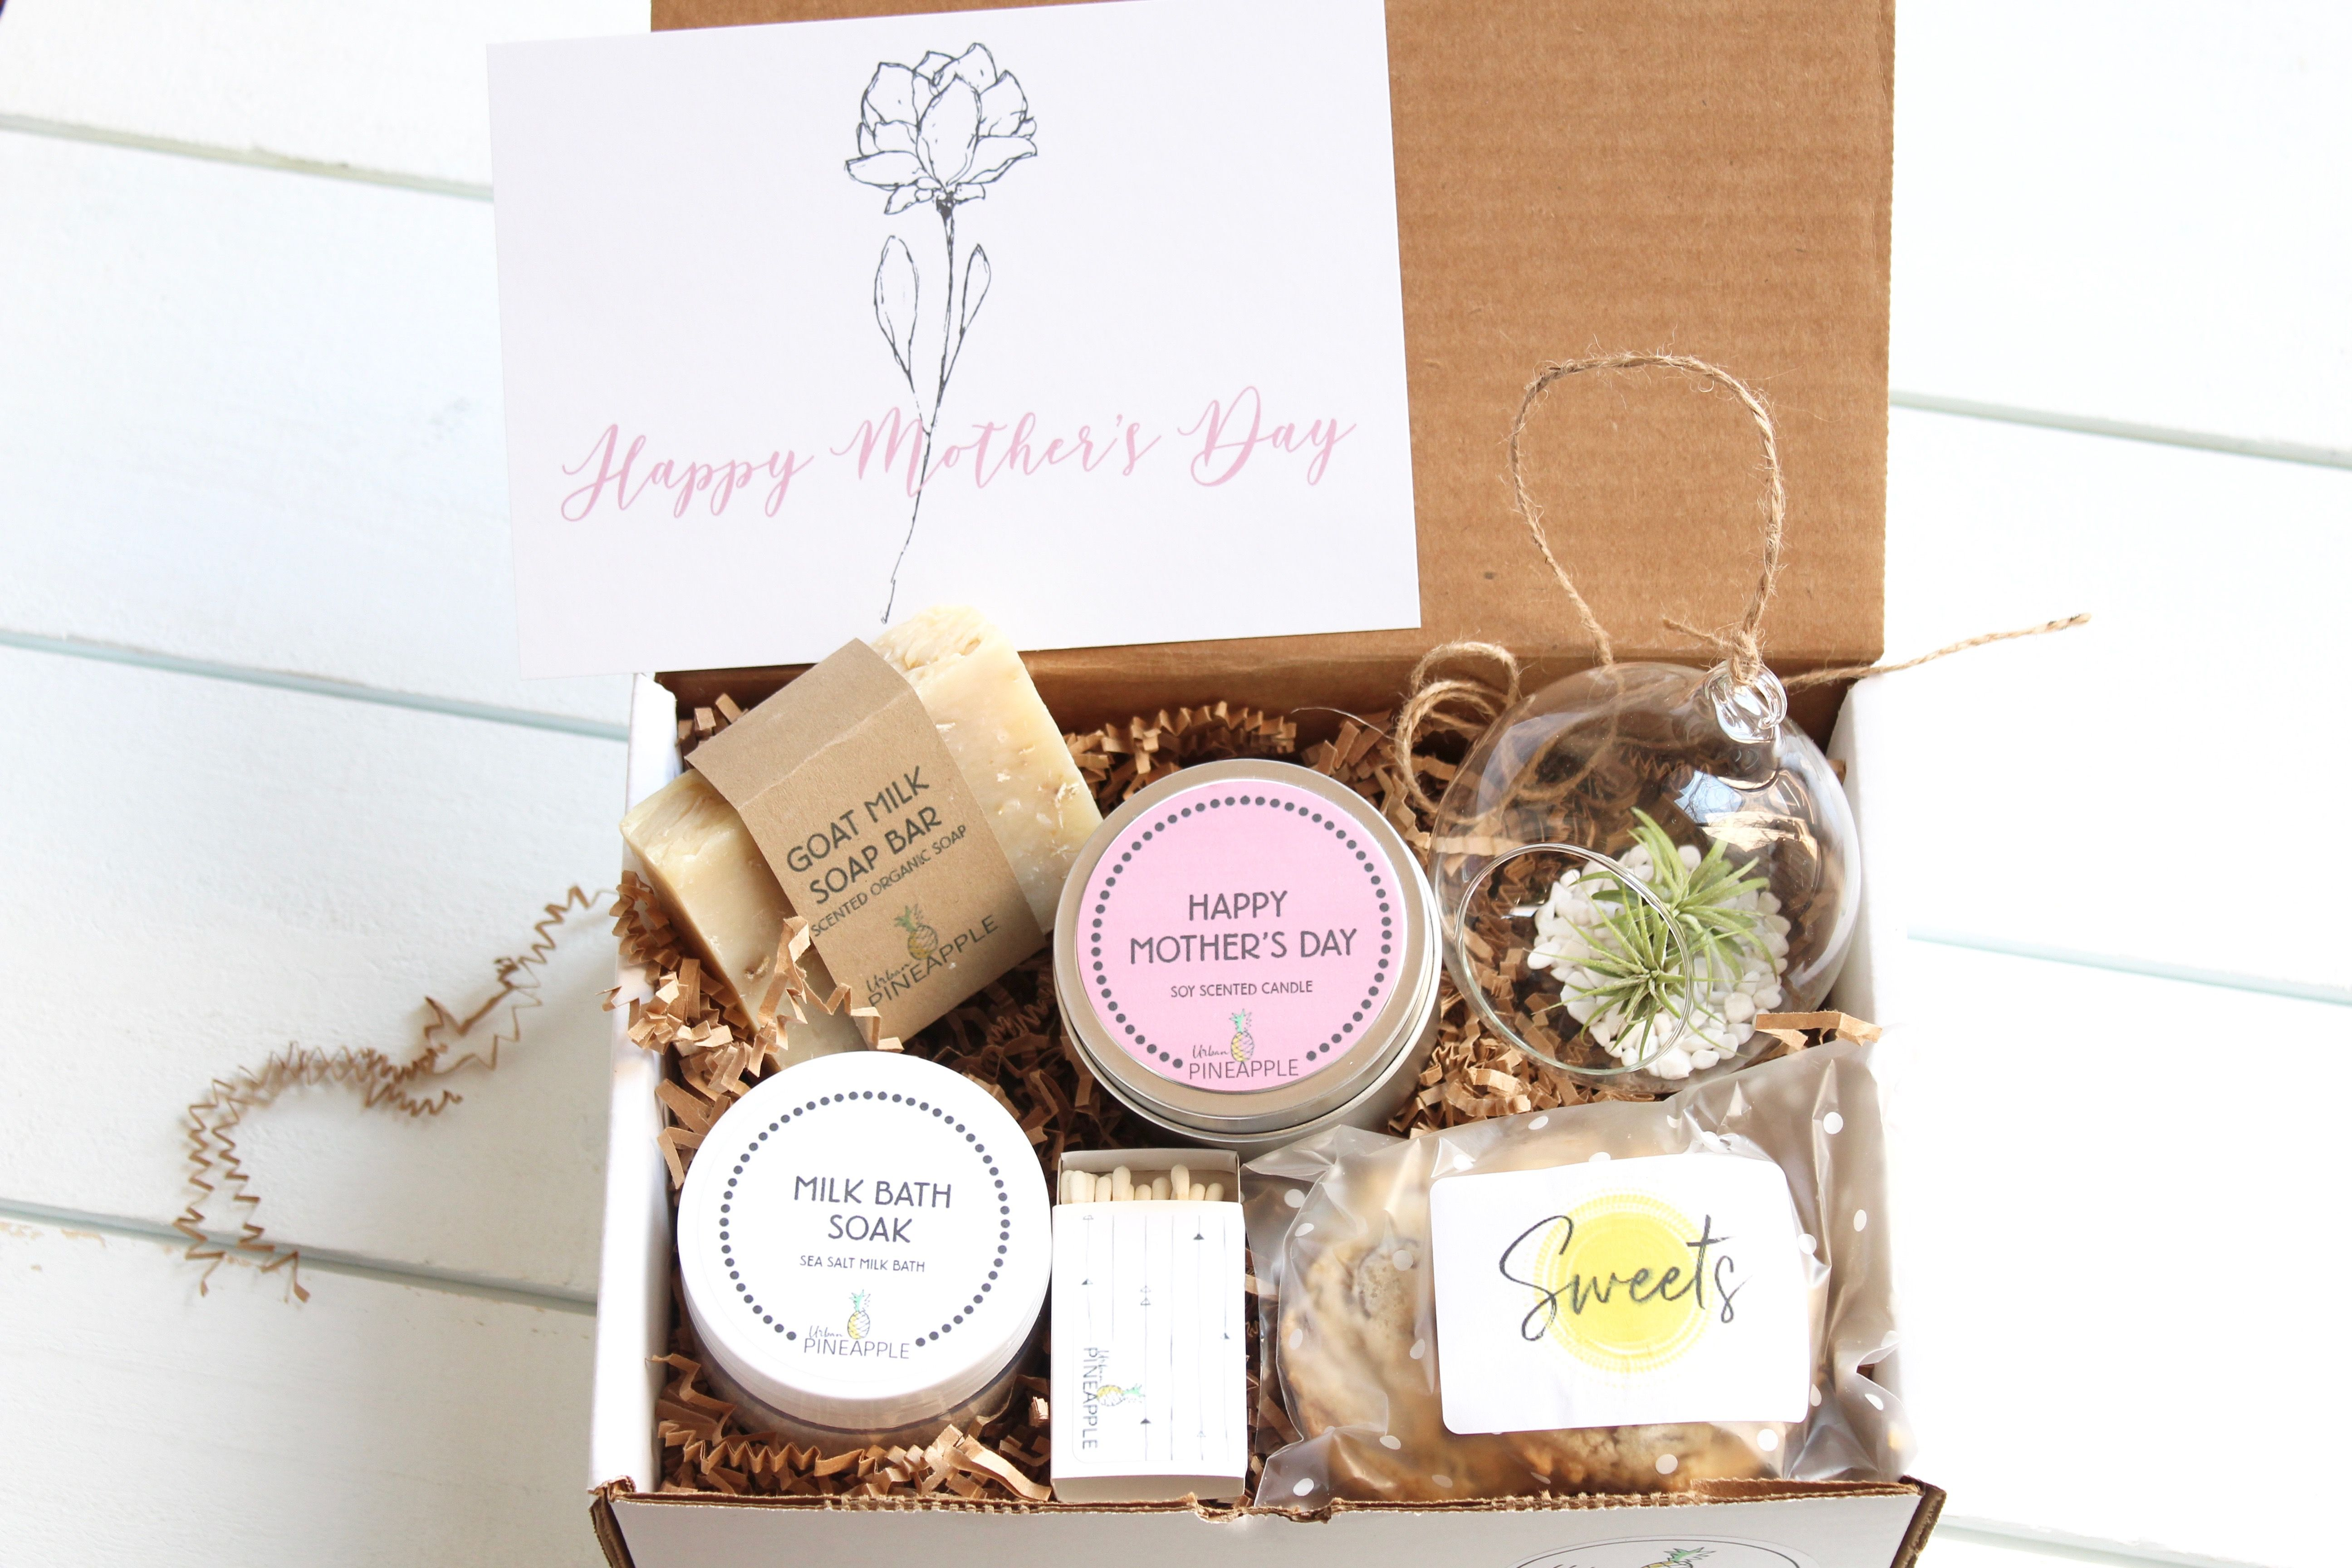 Personalized Gift Box Candle Gift Box Rose /& Candle Gift Set Gift Set for Her Mother/'s Day Gift Box Personalized Spa Gift Set